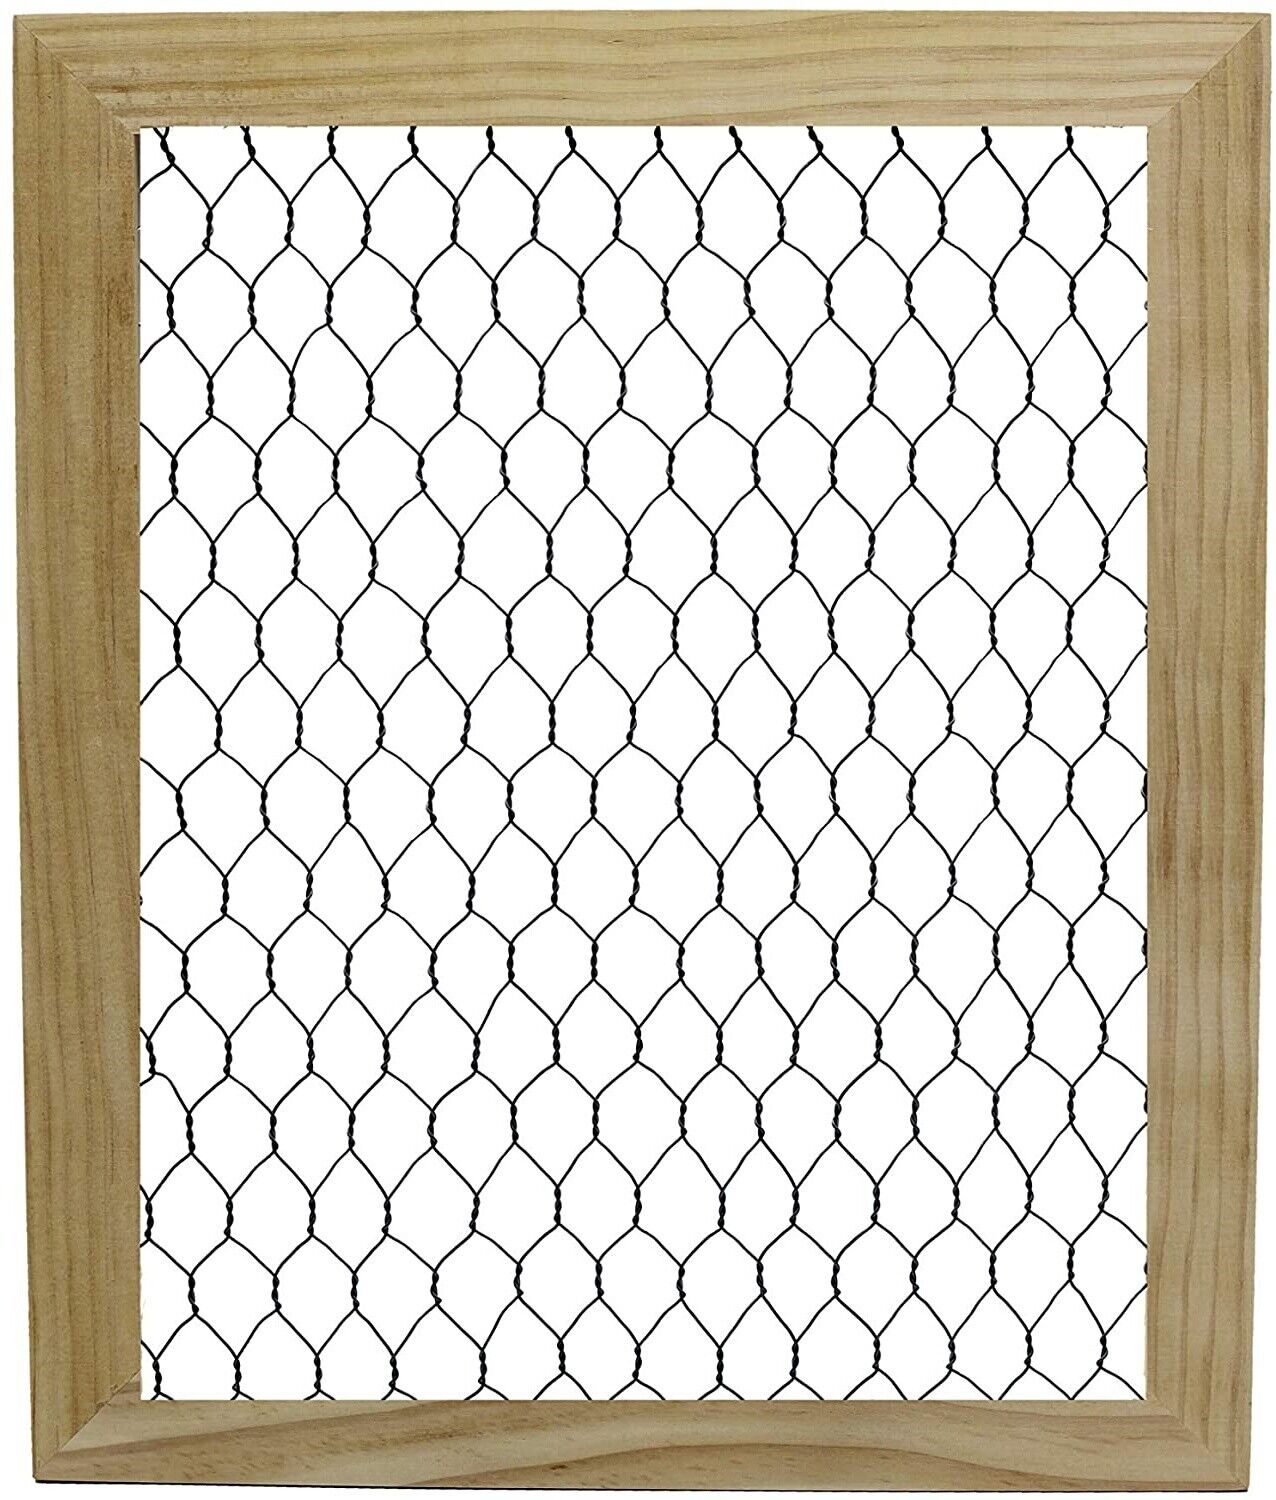 Unfinished Wood Chicken Wire Frame – Ready to Decorate, Add Photos, Collages Crafts